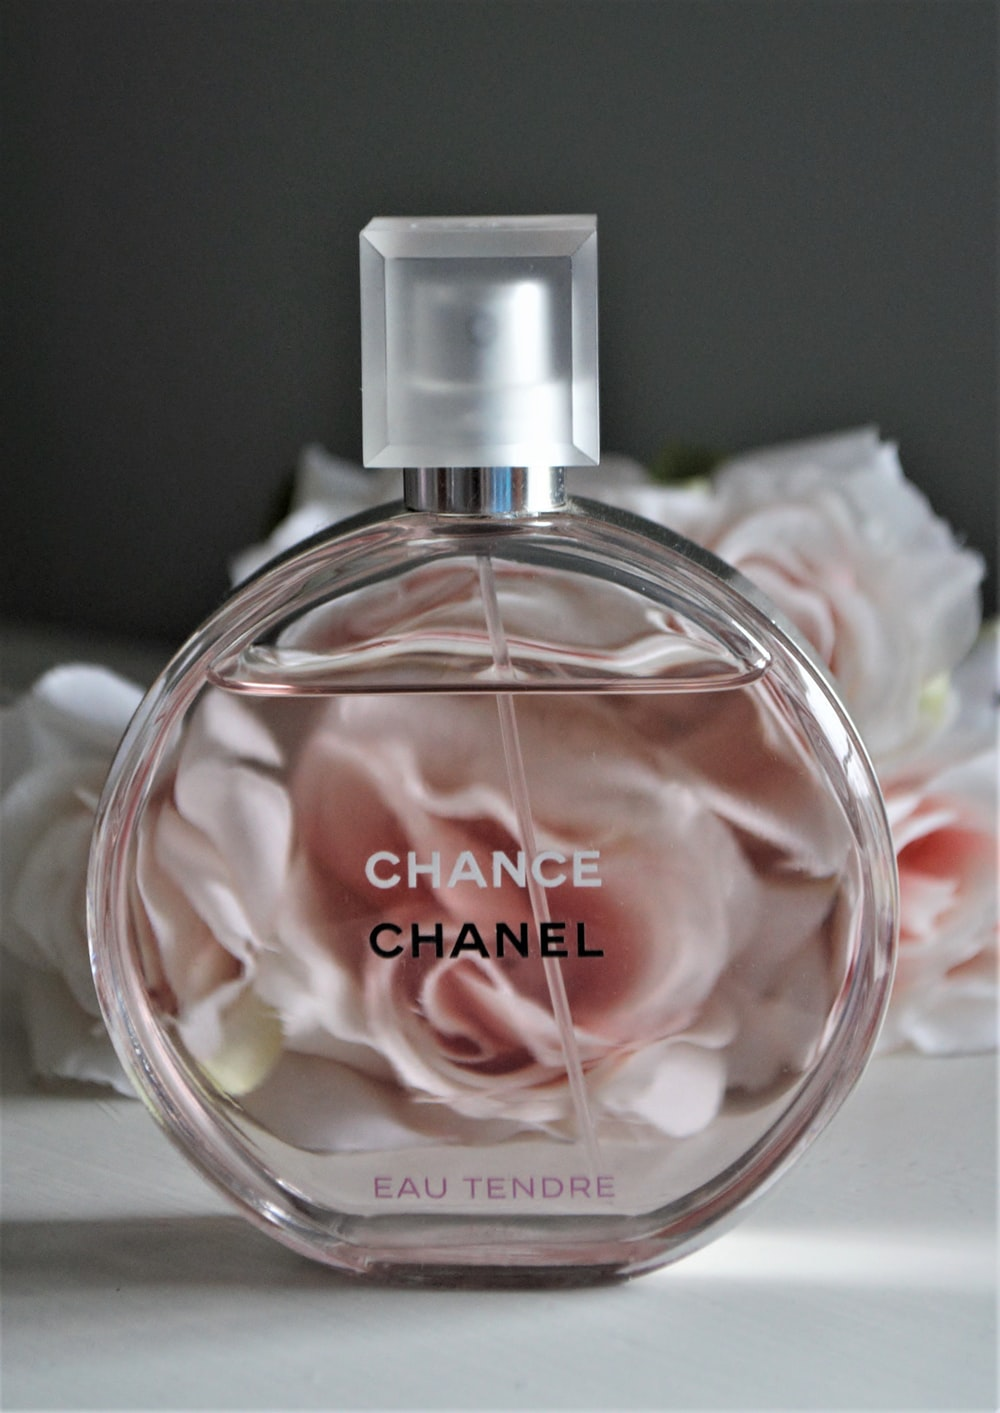 clear glass perfume bottle with pink liquid